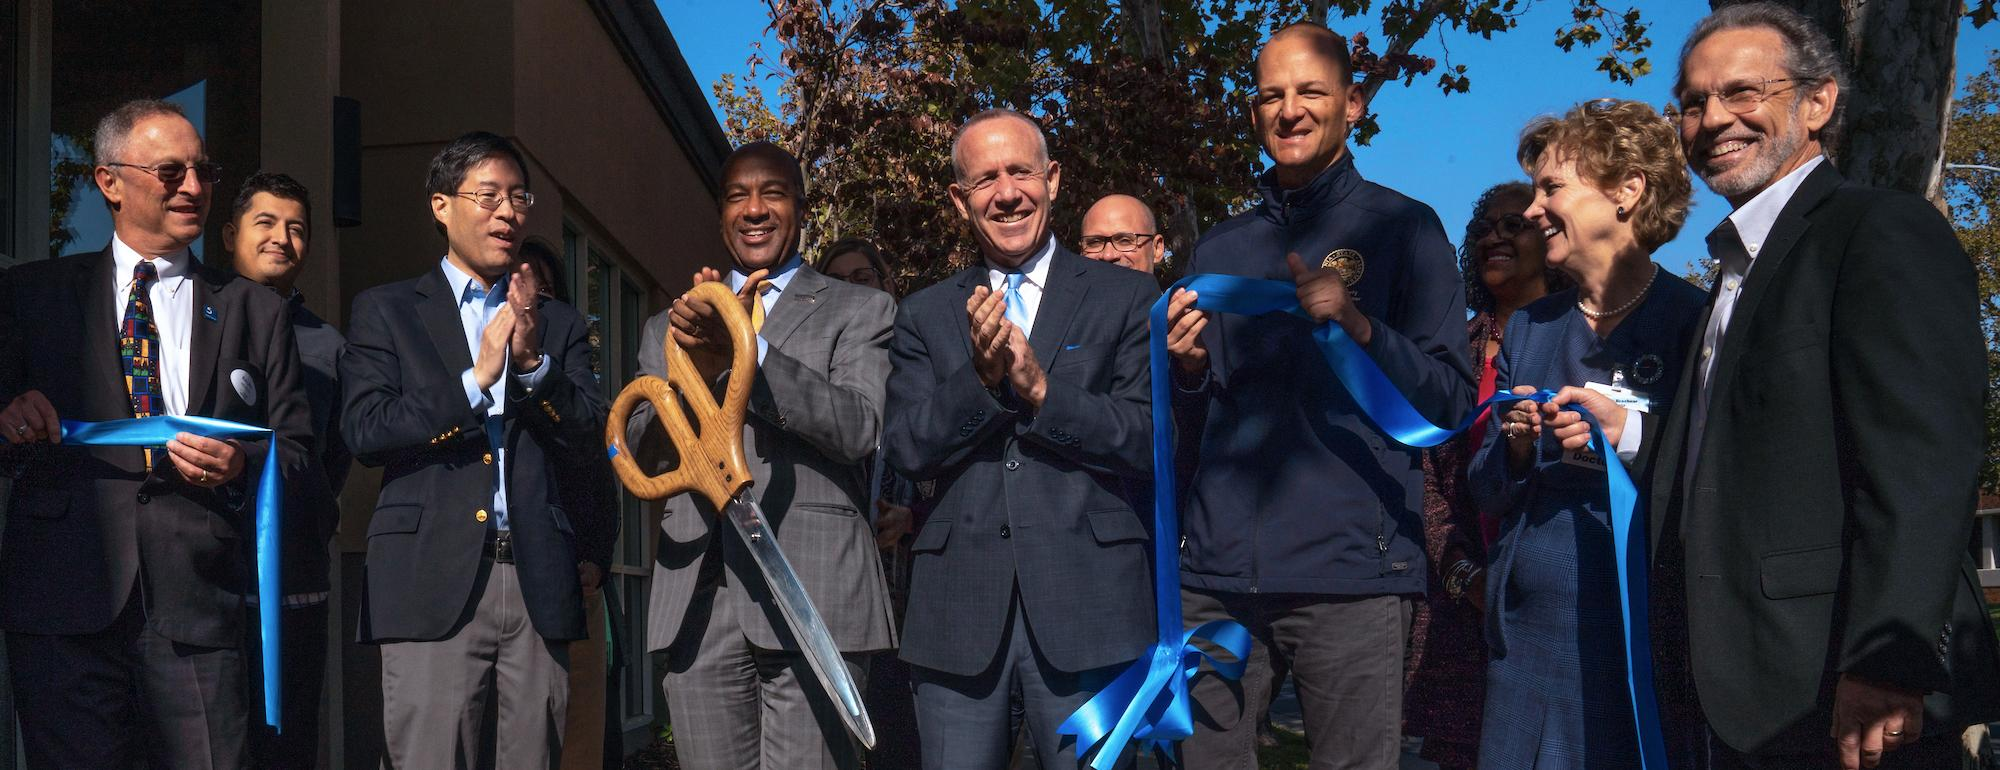 Chancellor Gary May and a team of people cut a ribbon at UC Davis Aggie Square